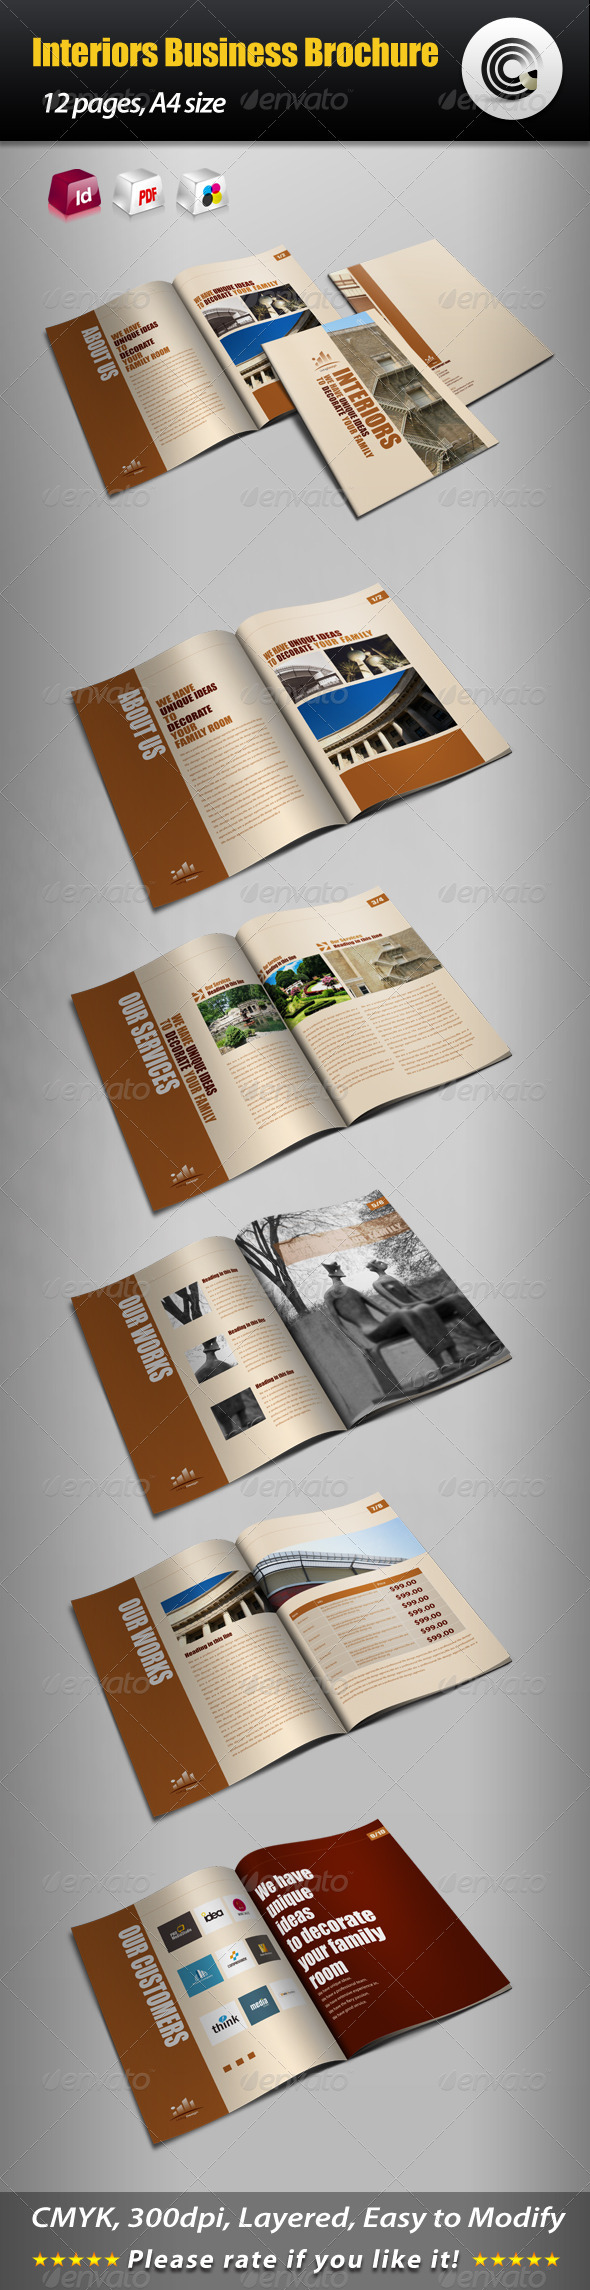 Interiors Business Brochure - Corporate Brochures